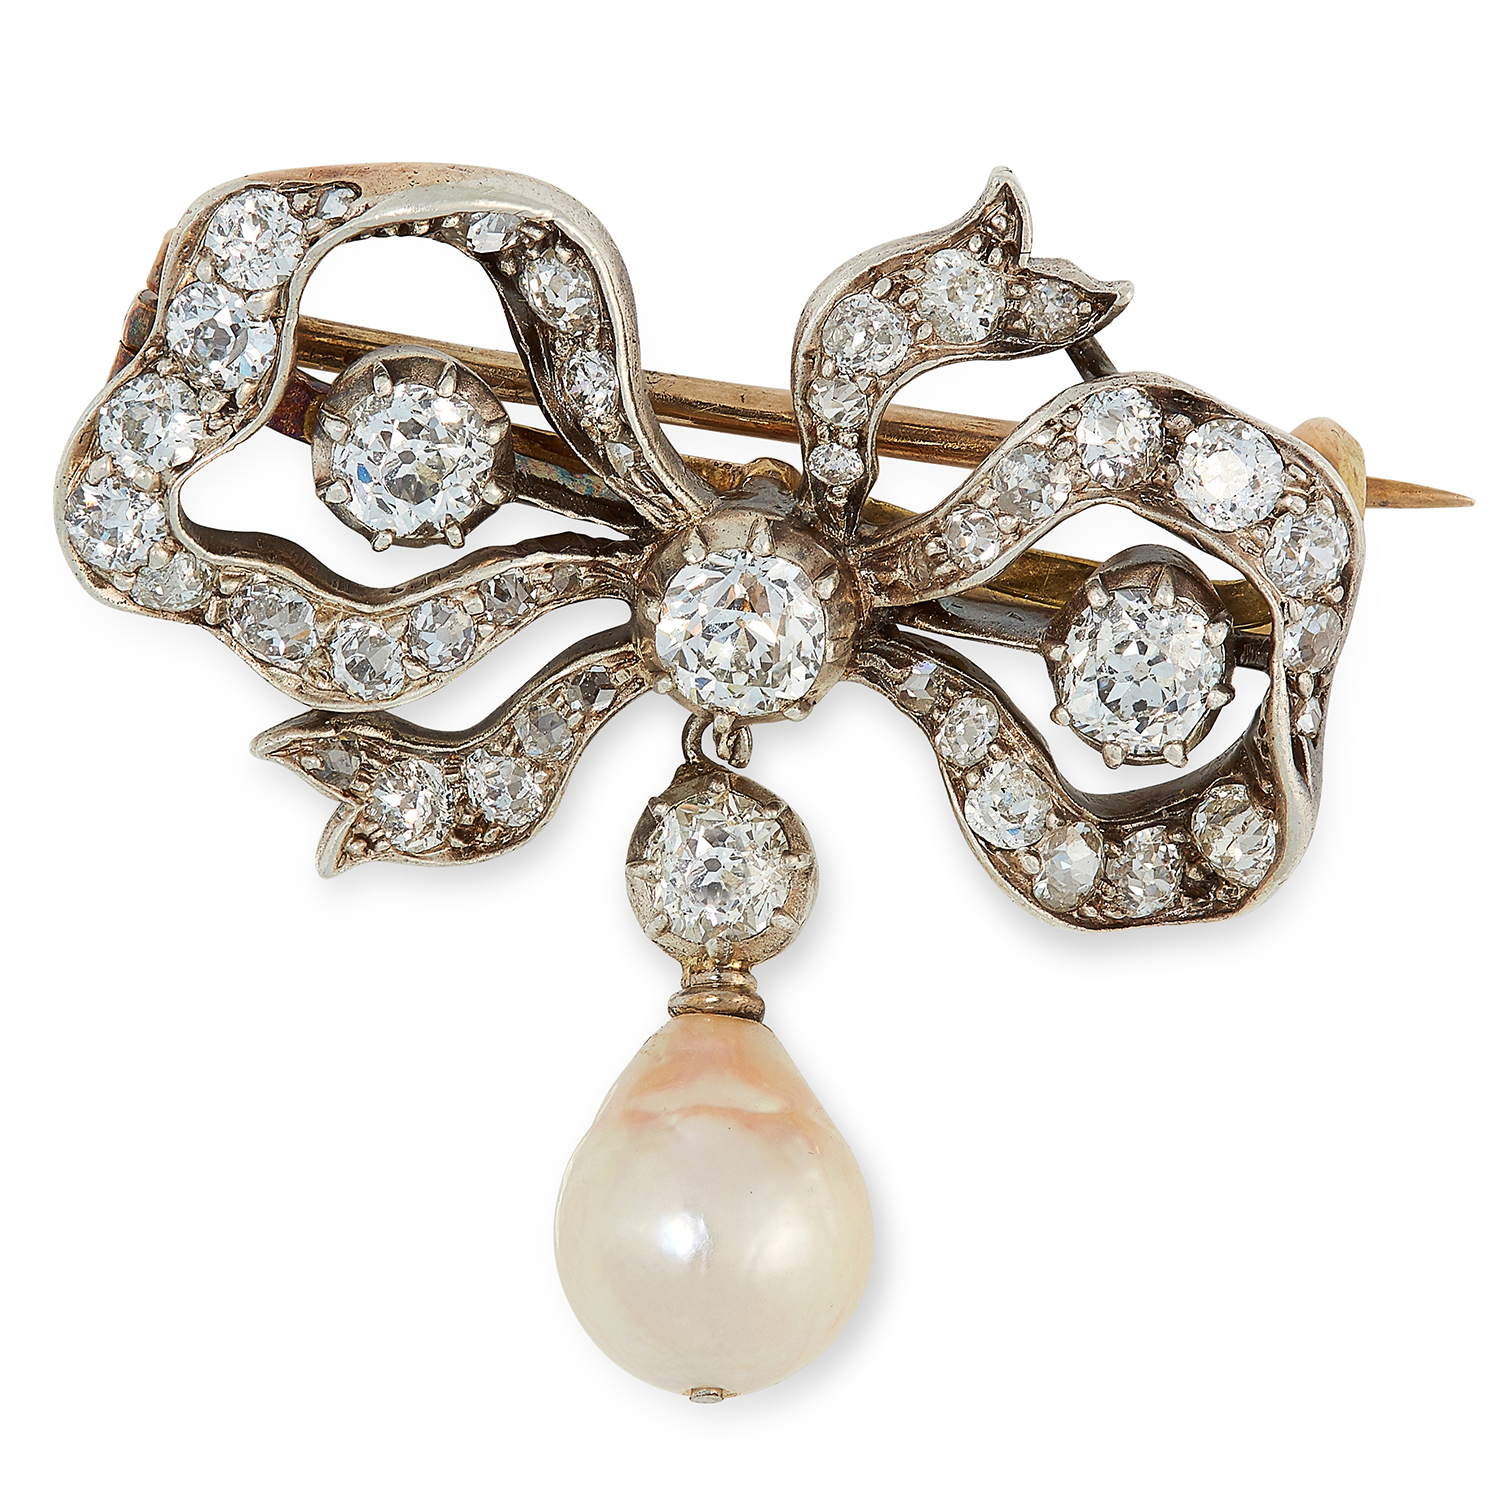 Los 6 - AN ANTIQUE DIAMOND AND PEARL BOW BROOCH the bow set with old and rose cut diamonds, suspending a